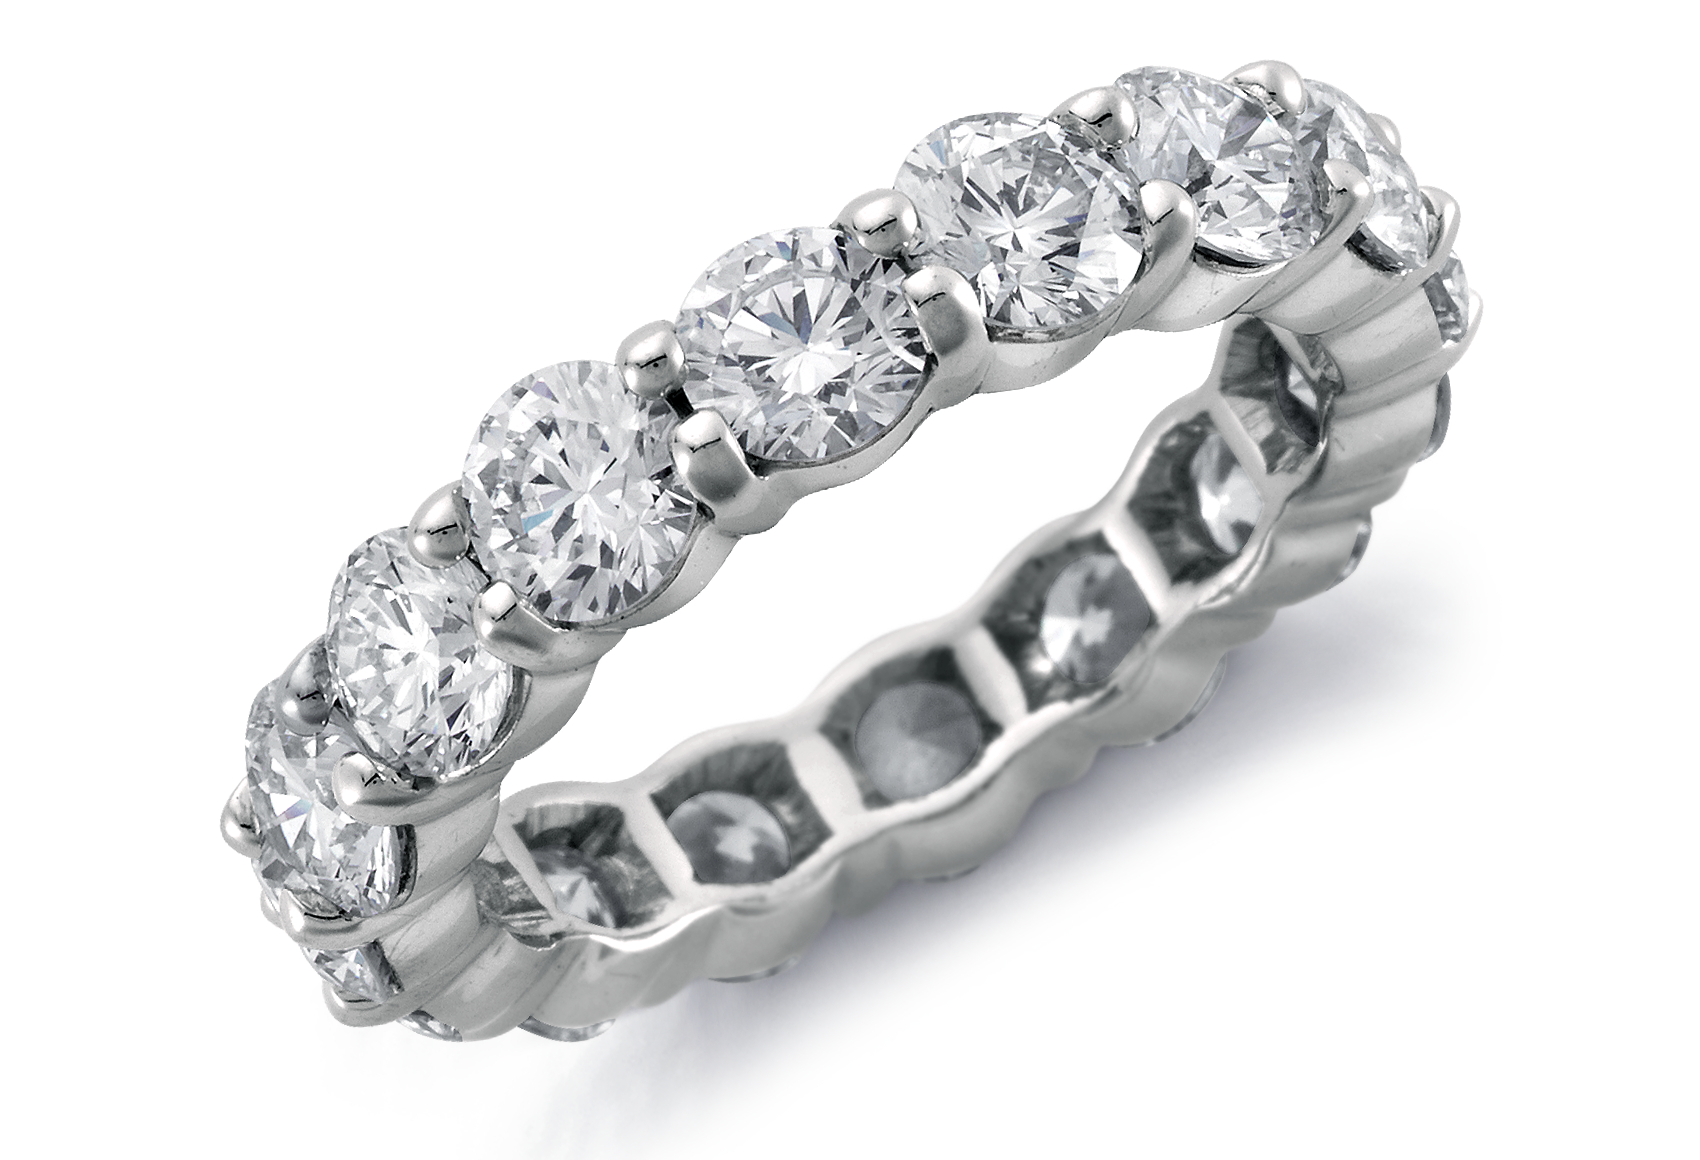 Signature Diamond Jewellery